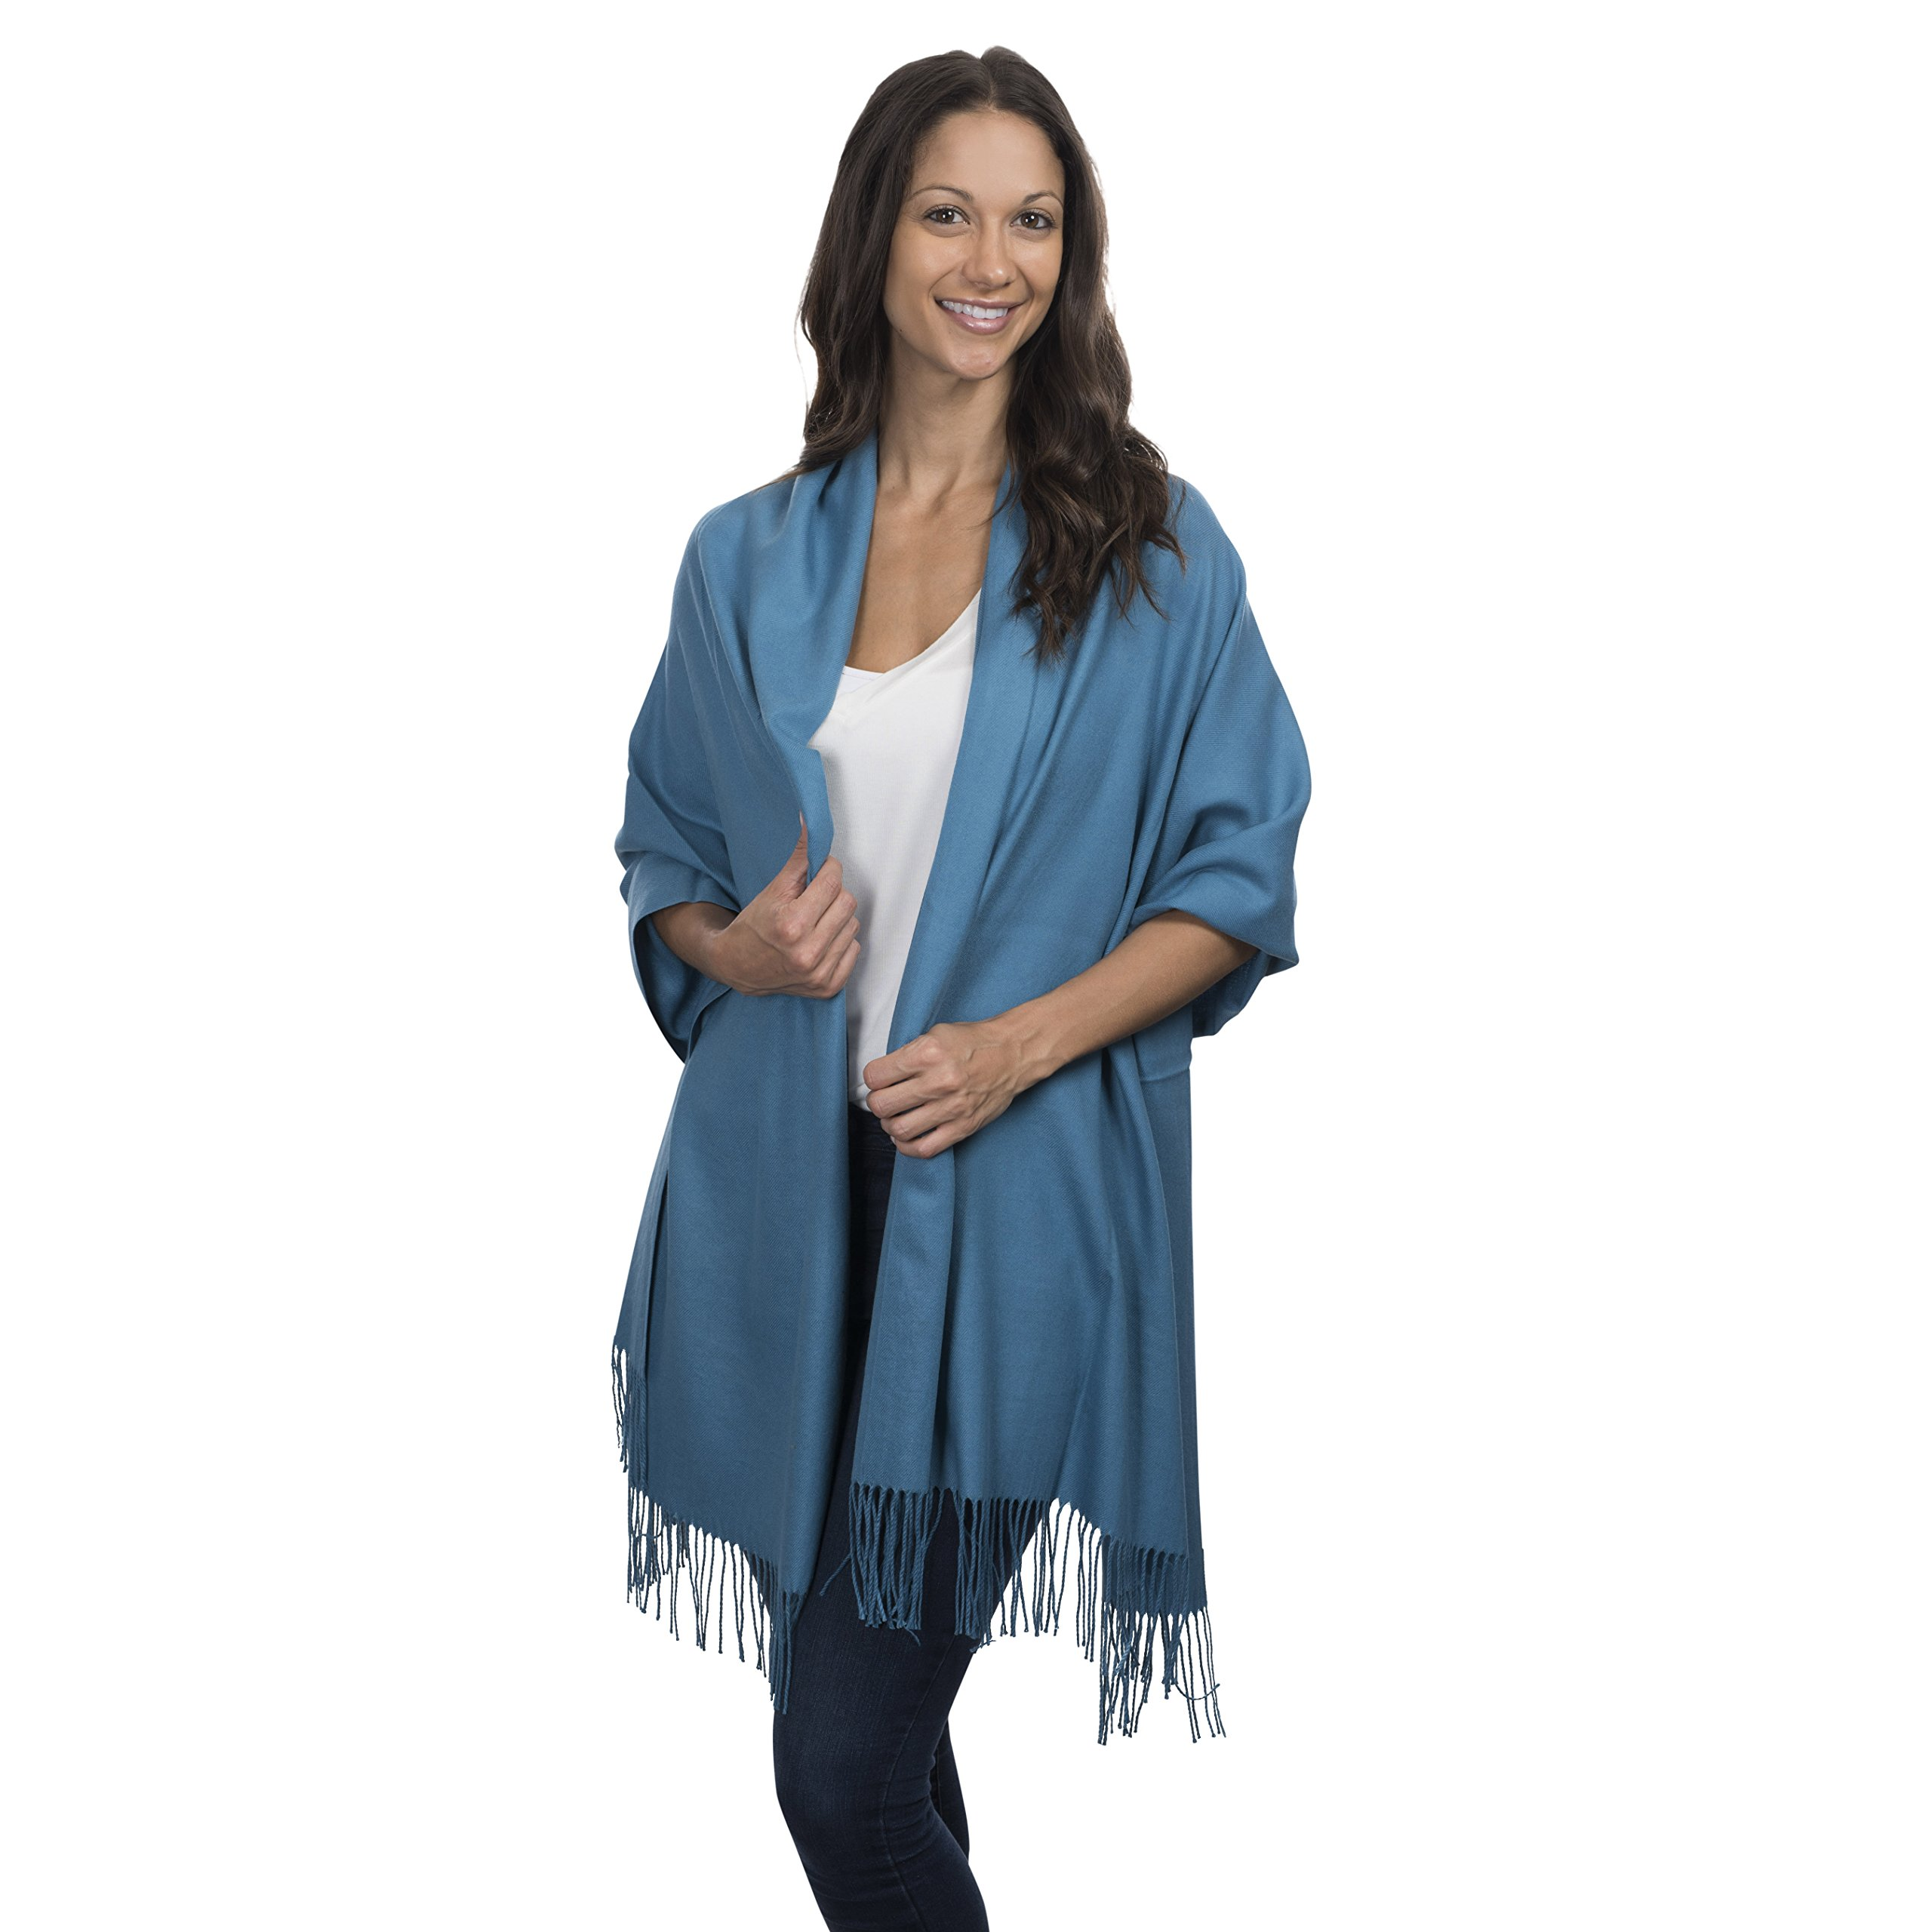 Cashmere & Class Large Soft Cashmere Scarf Wrap - Womens Winter Shawl + Gift Box (blue)